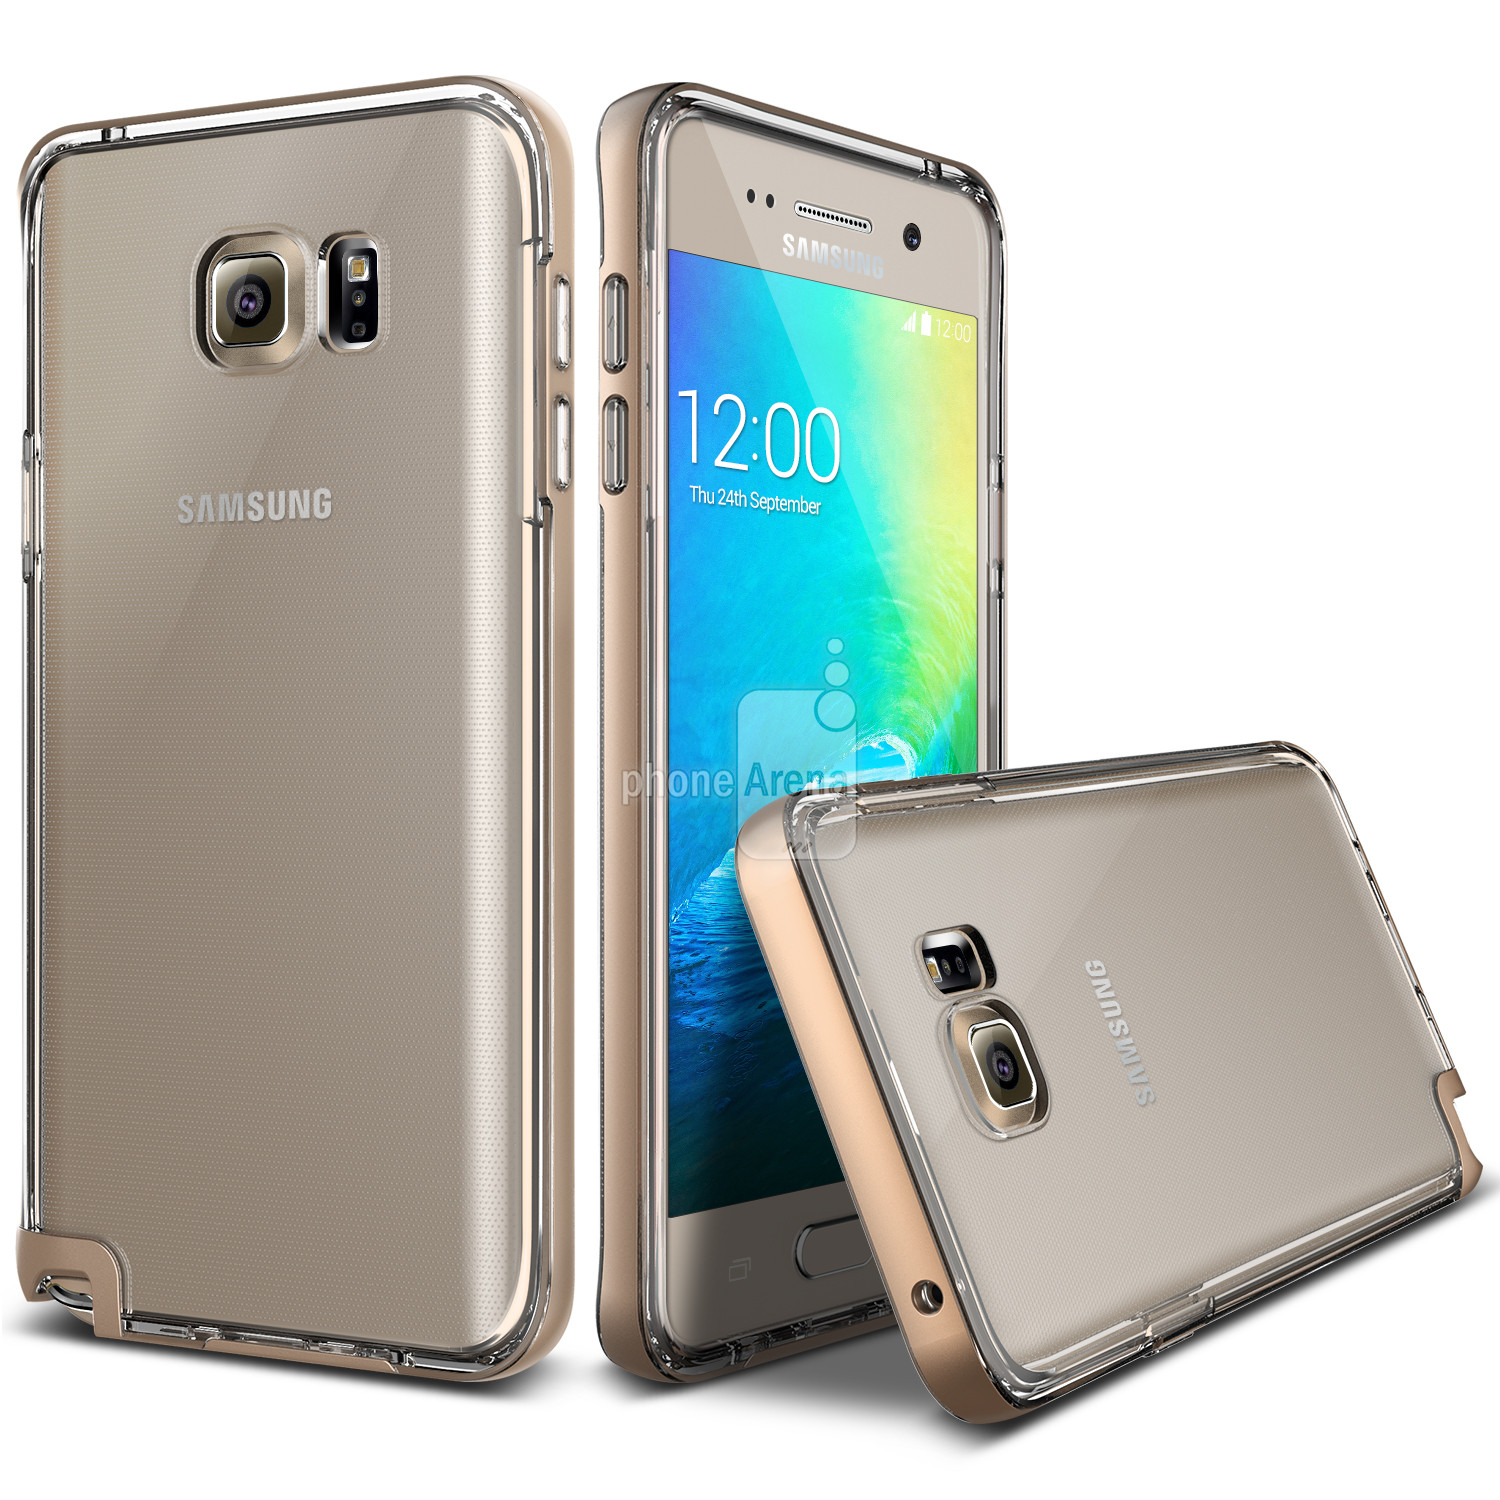 Samsung Galaxy Note 5 Gets Rendered in Impressive Amount of Verus Case Imagery | GSMDome.com